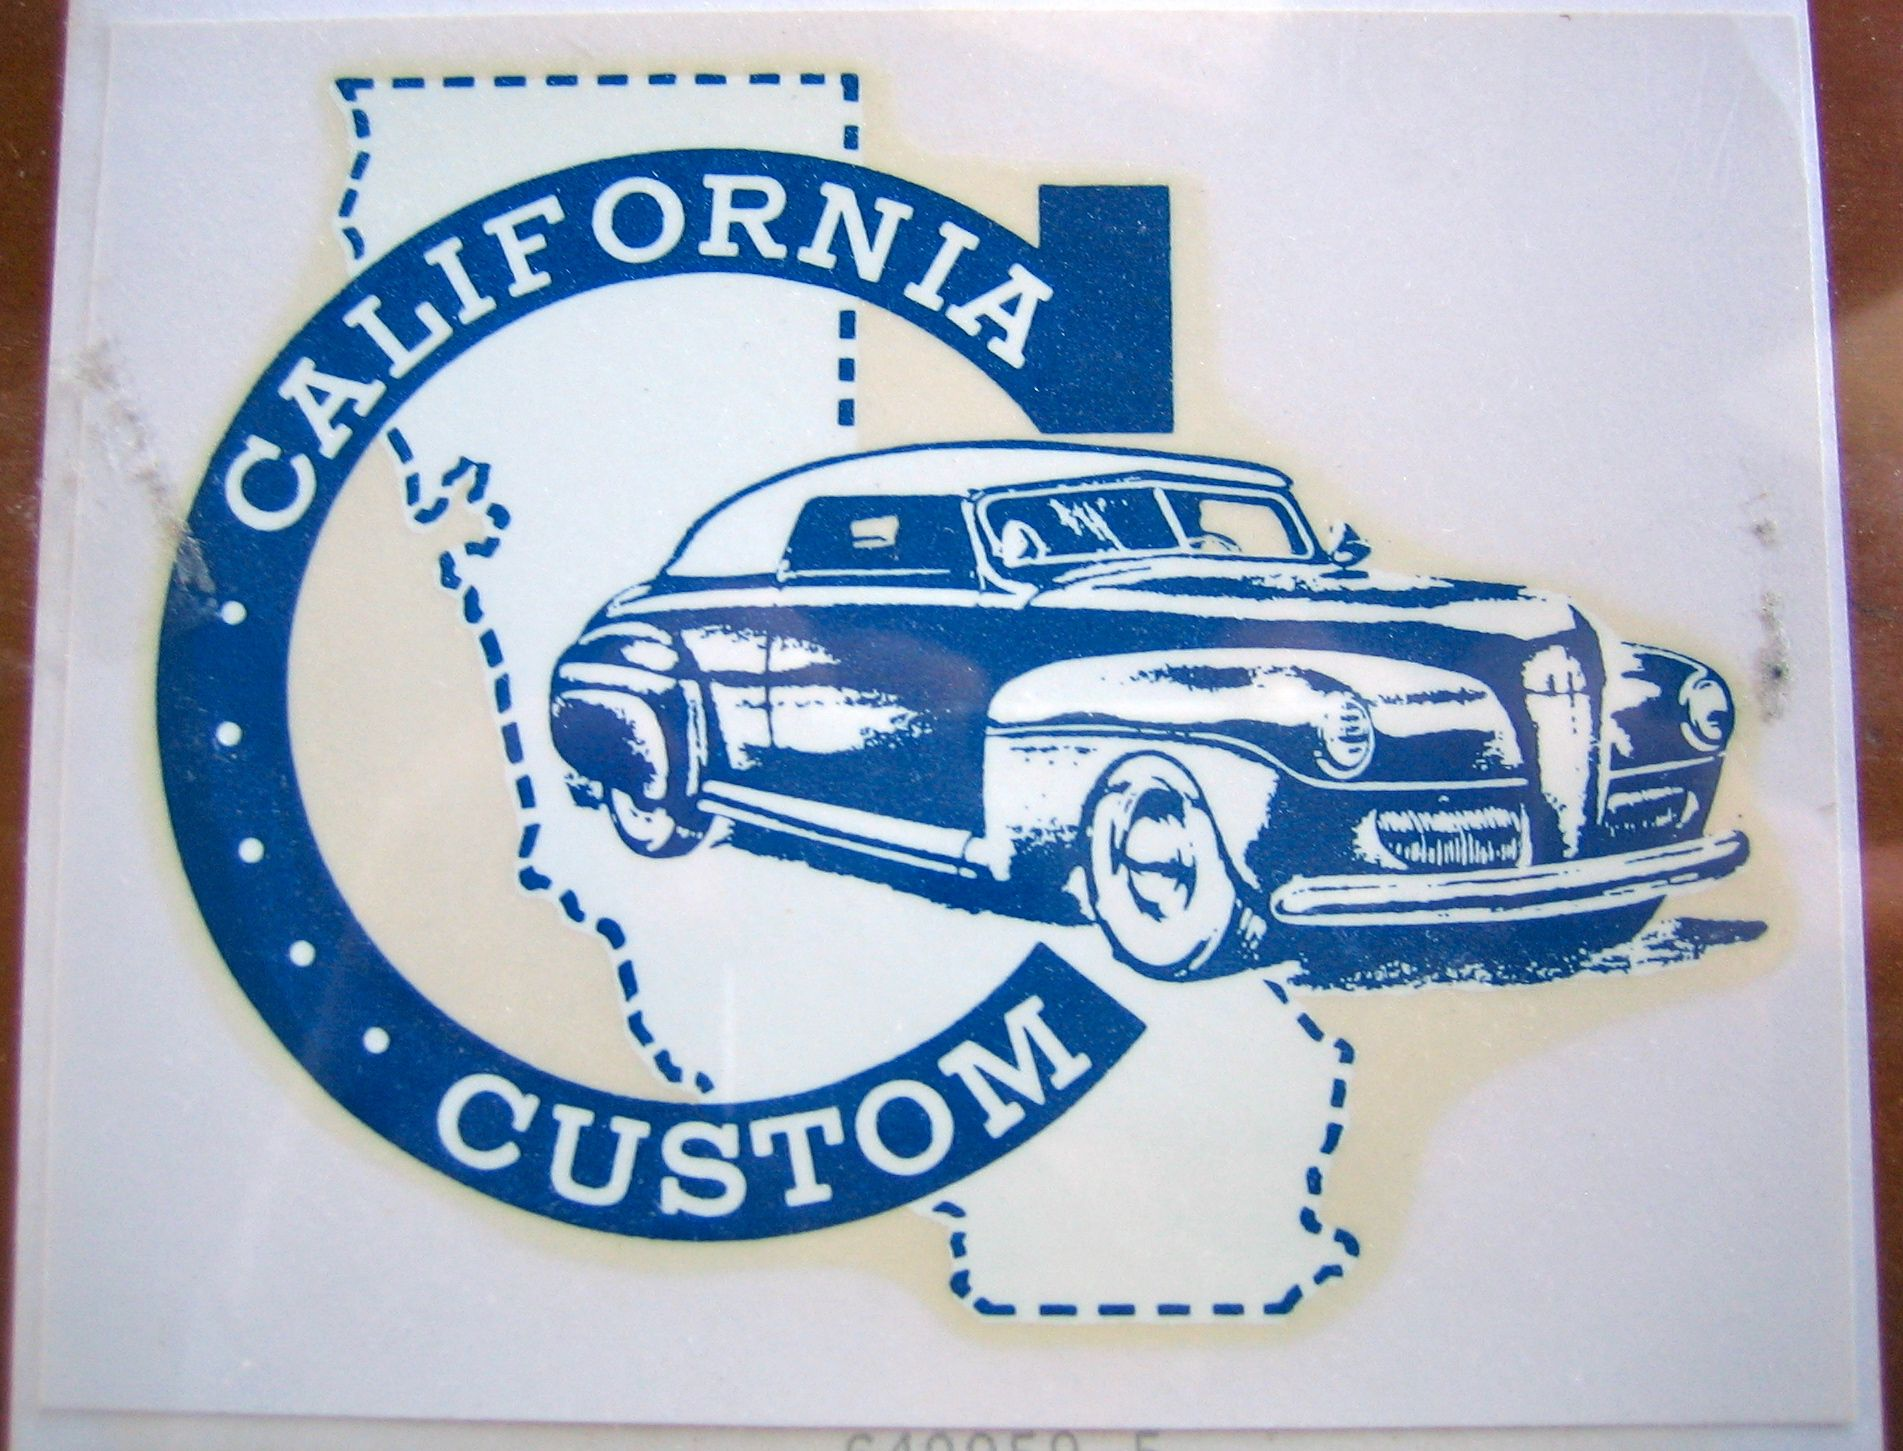 Waterproof Sticker Vintage Car Decal Stickers Aluminum Foil Lots Of Vintage Logos Ford Chevy Lotus Volvo Ferrari Car Stickers And Car Decals [ 1920 x 2560 Pixel ]